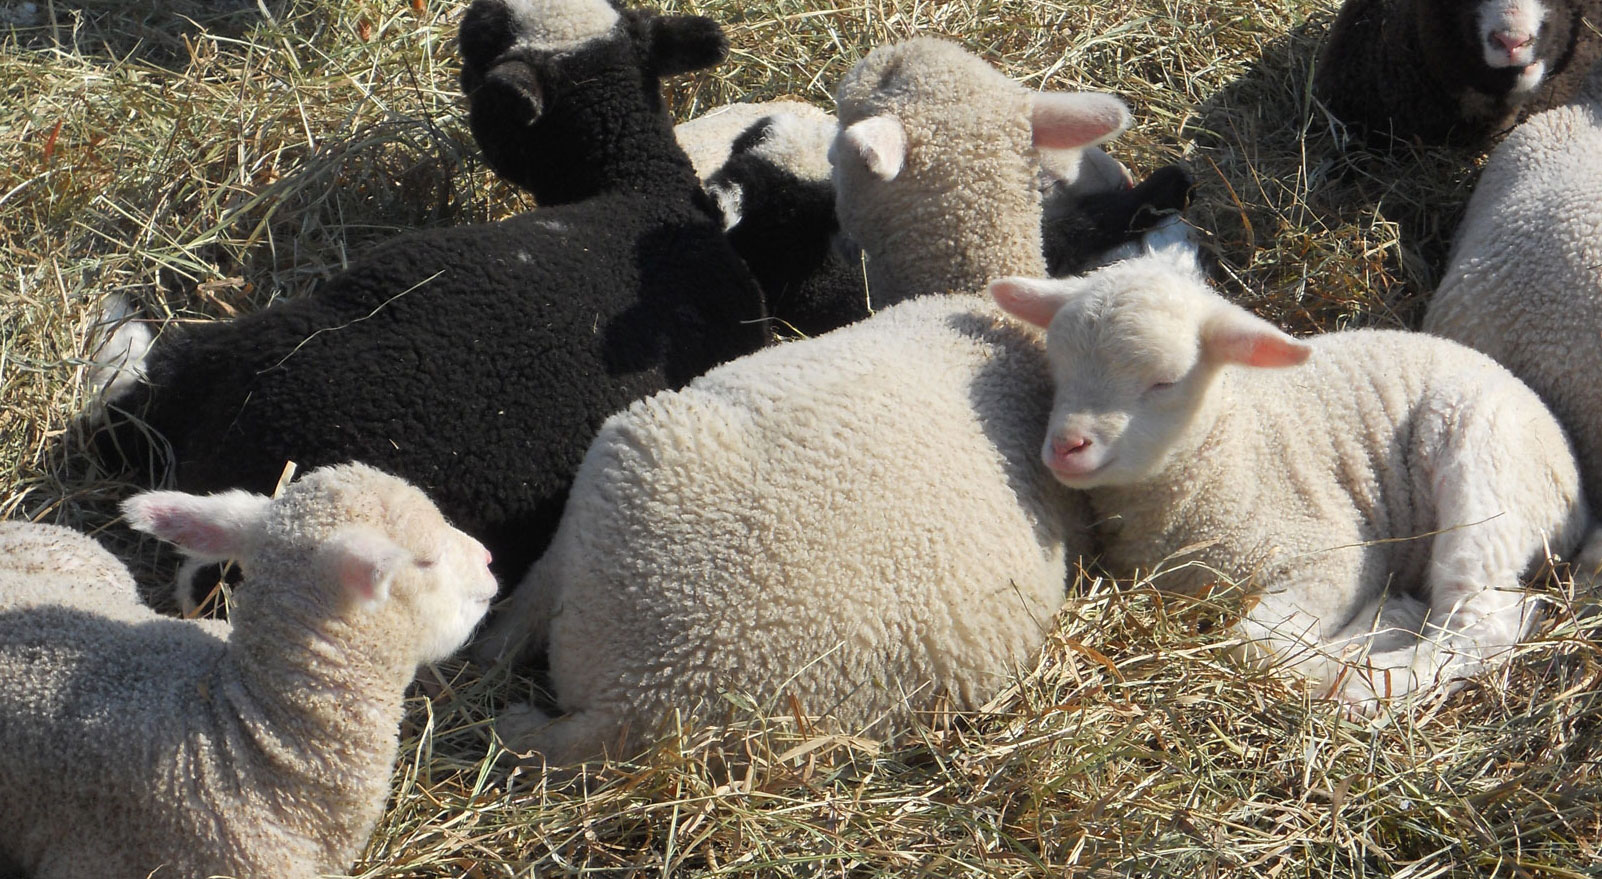 Lambs play a symbolic role in both Easter and Passover. Photo: Ellen Rocco